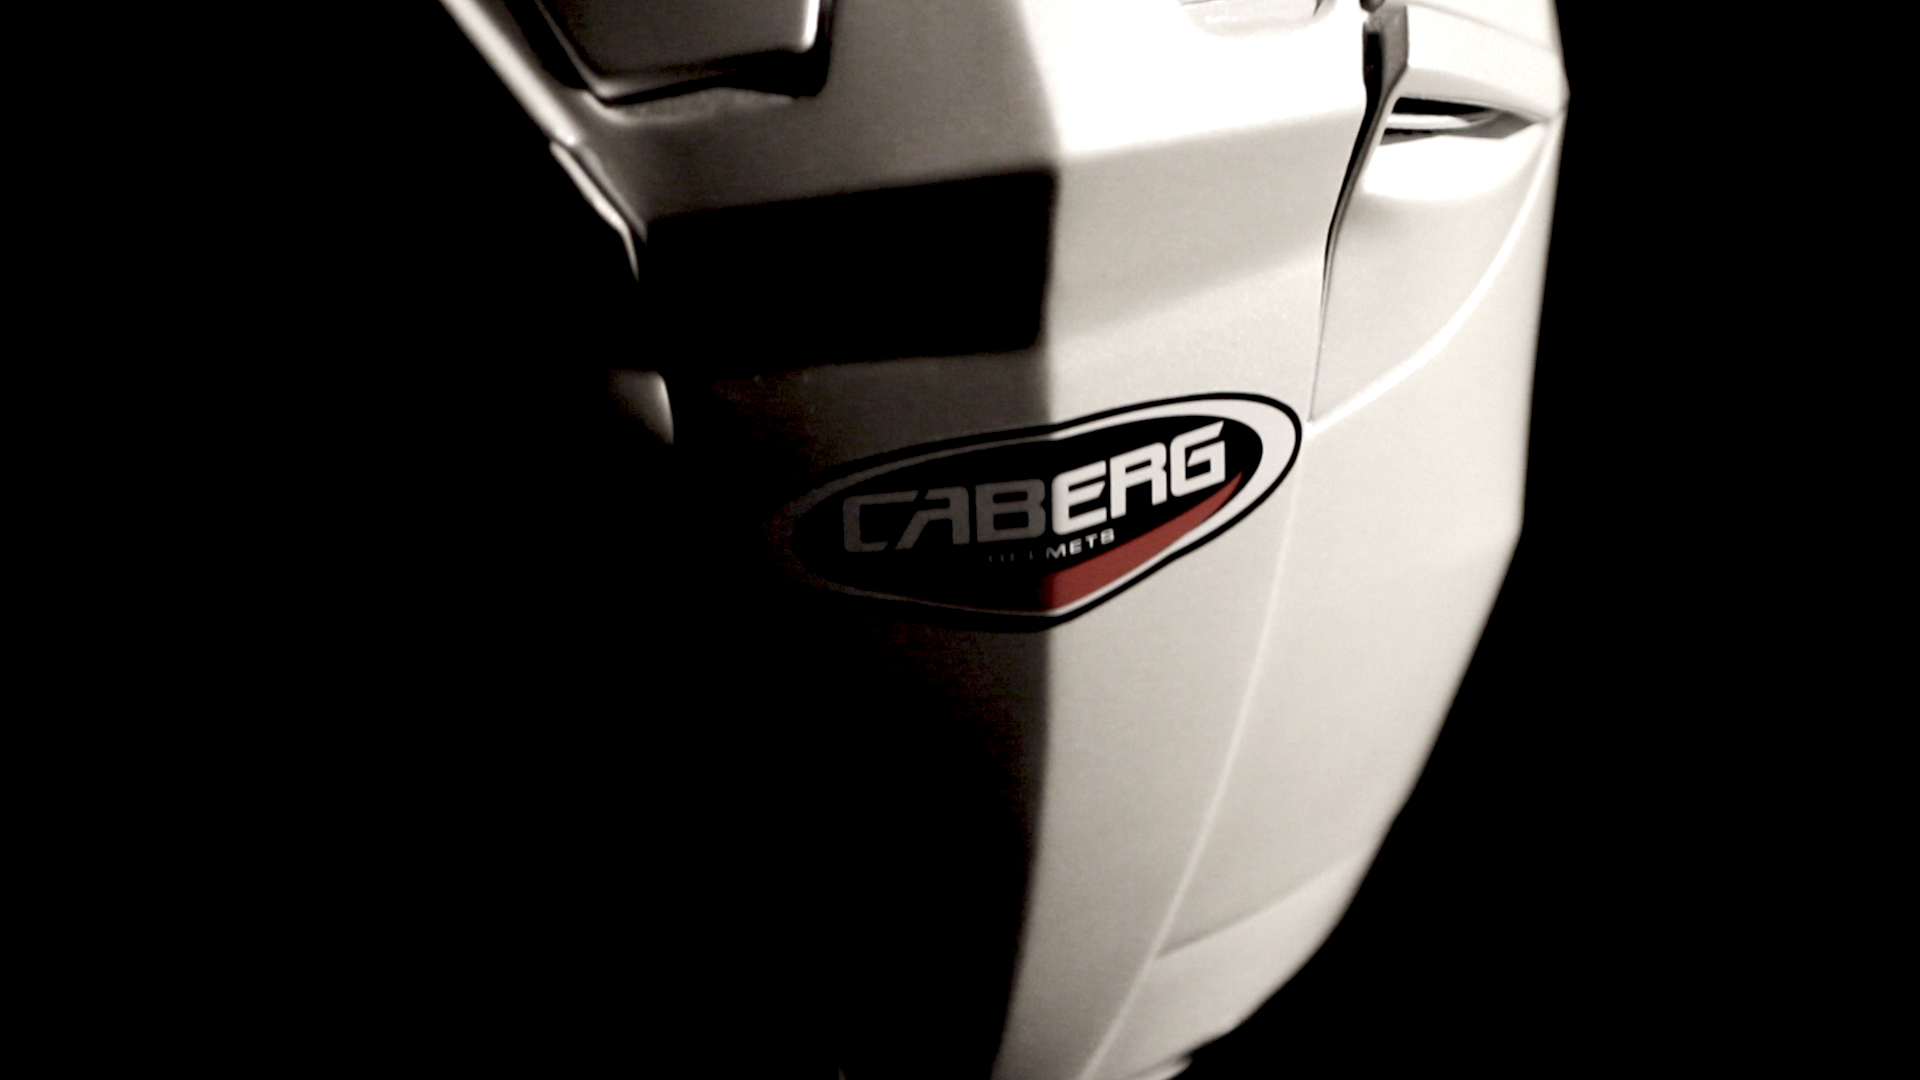 Back side of a white helmet with Caberg logo in the center